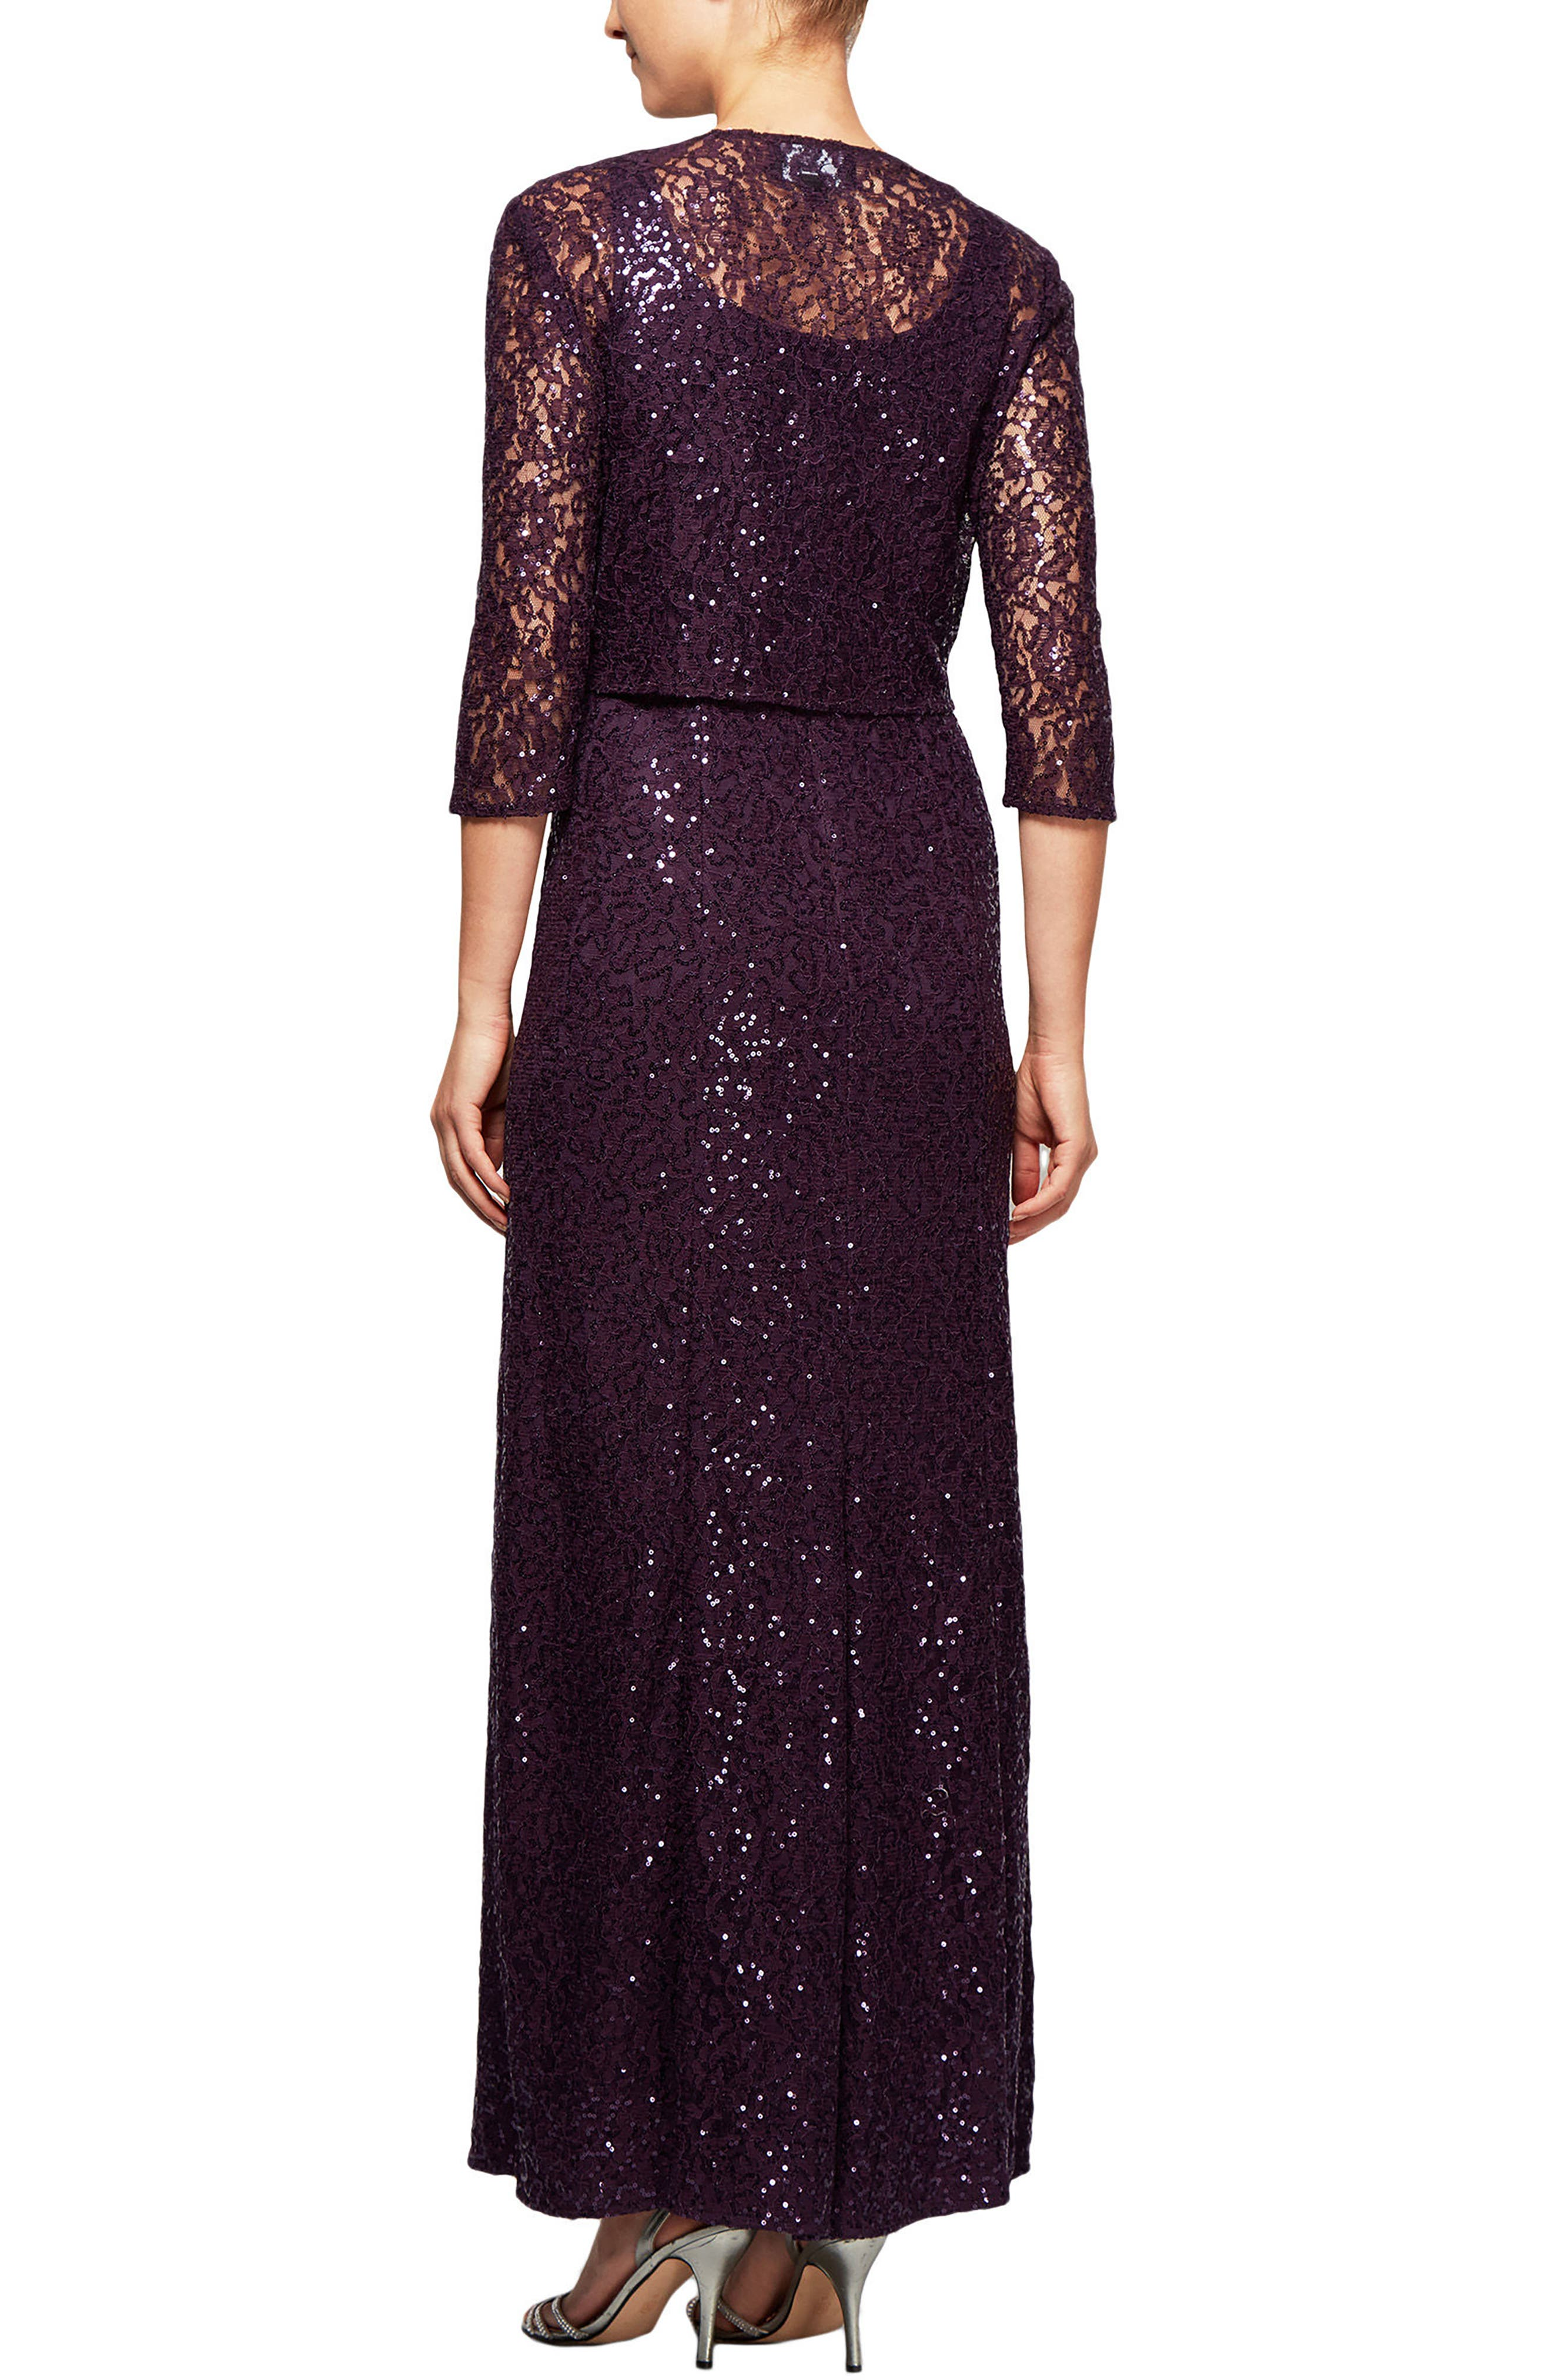 Sequin Lace Long Dress with Jacket,                             Alternate thumbnail 2, color,                             540